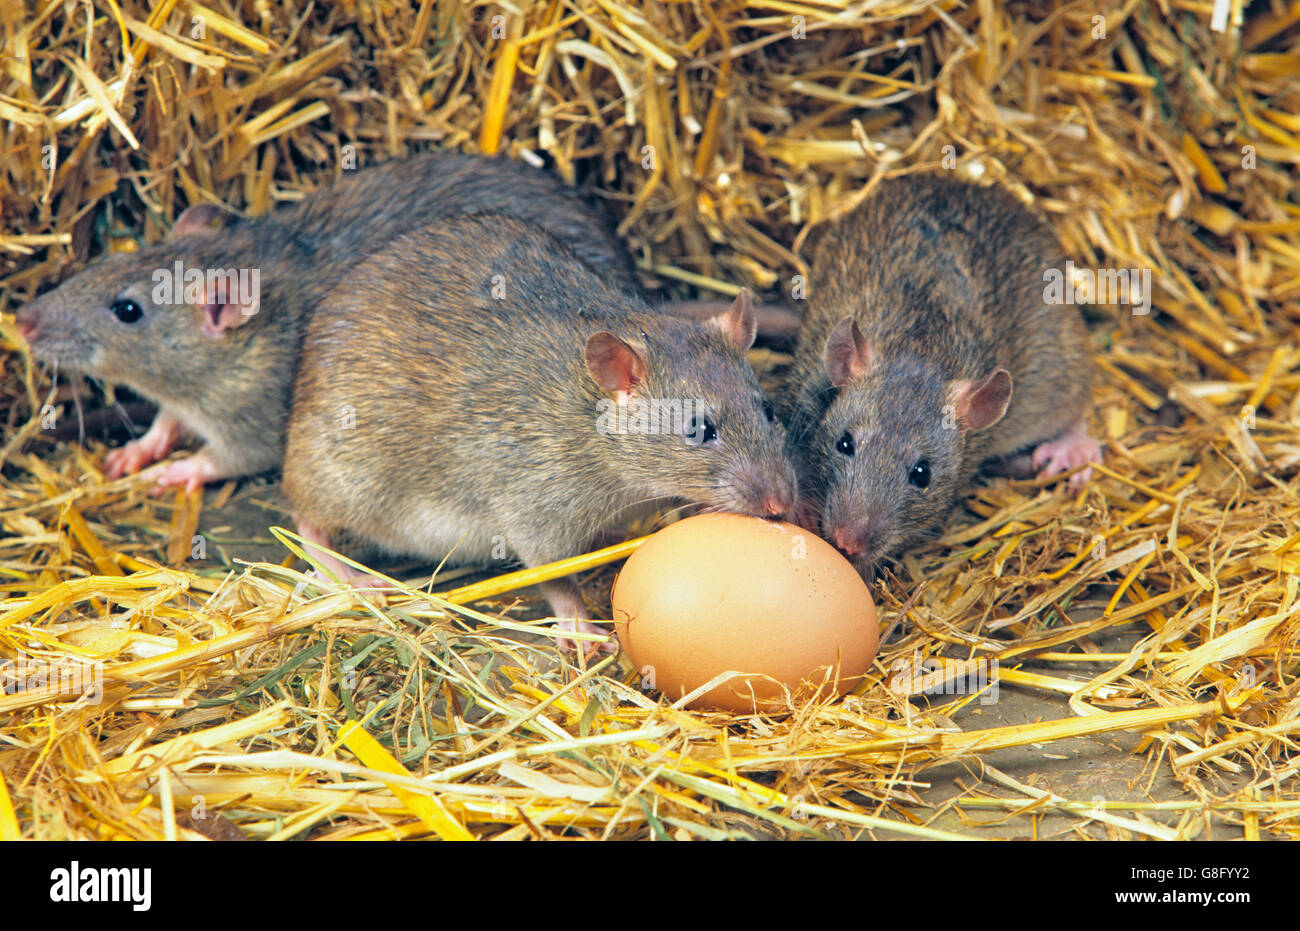 Brown Rats Rattus norvegicus eating chickens egg in poultry farm - Stock Image